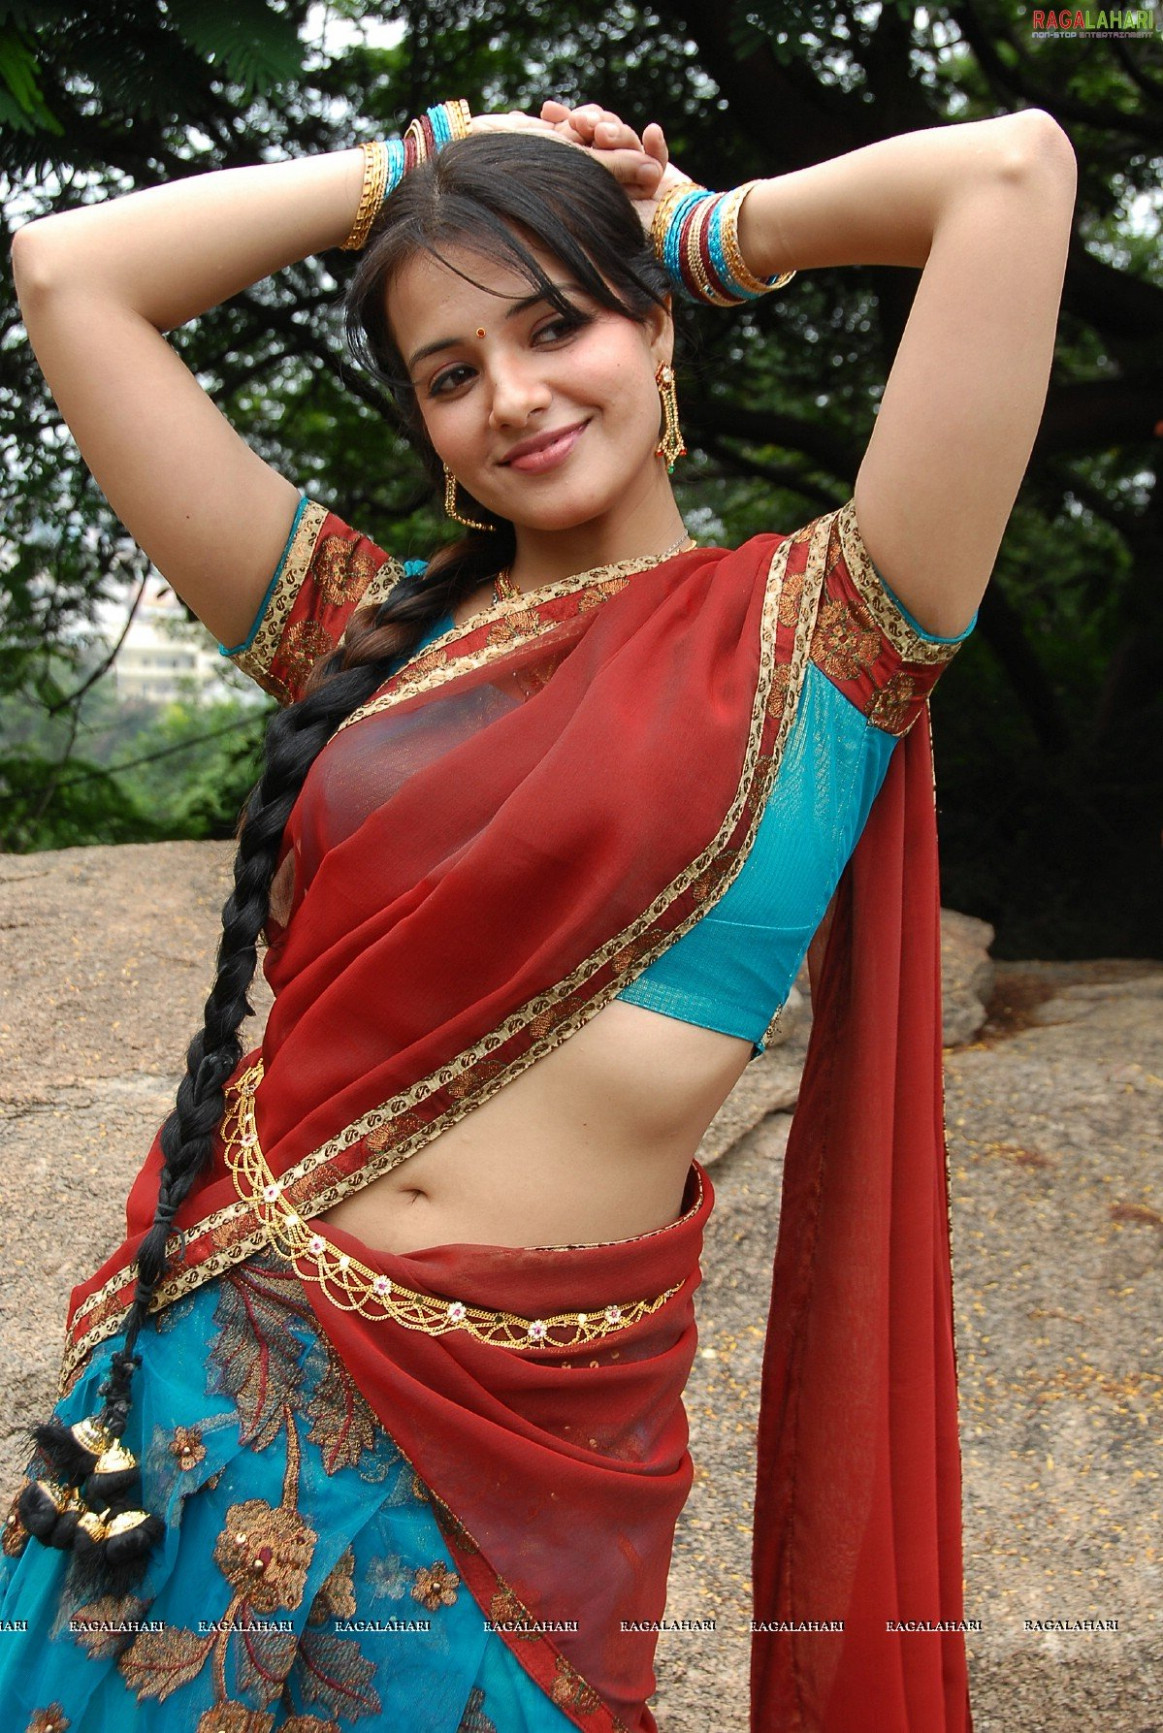 Cute Navel N Low Waist Saree - Page 21 - Xossip